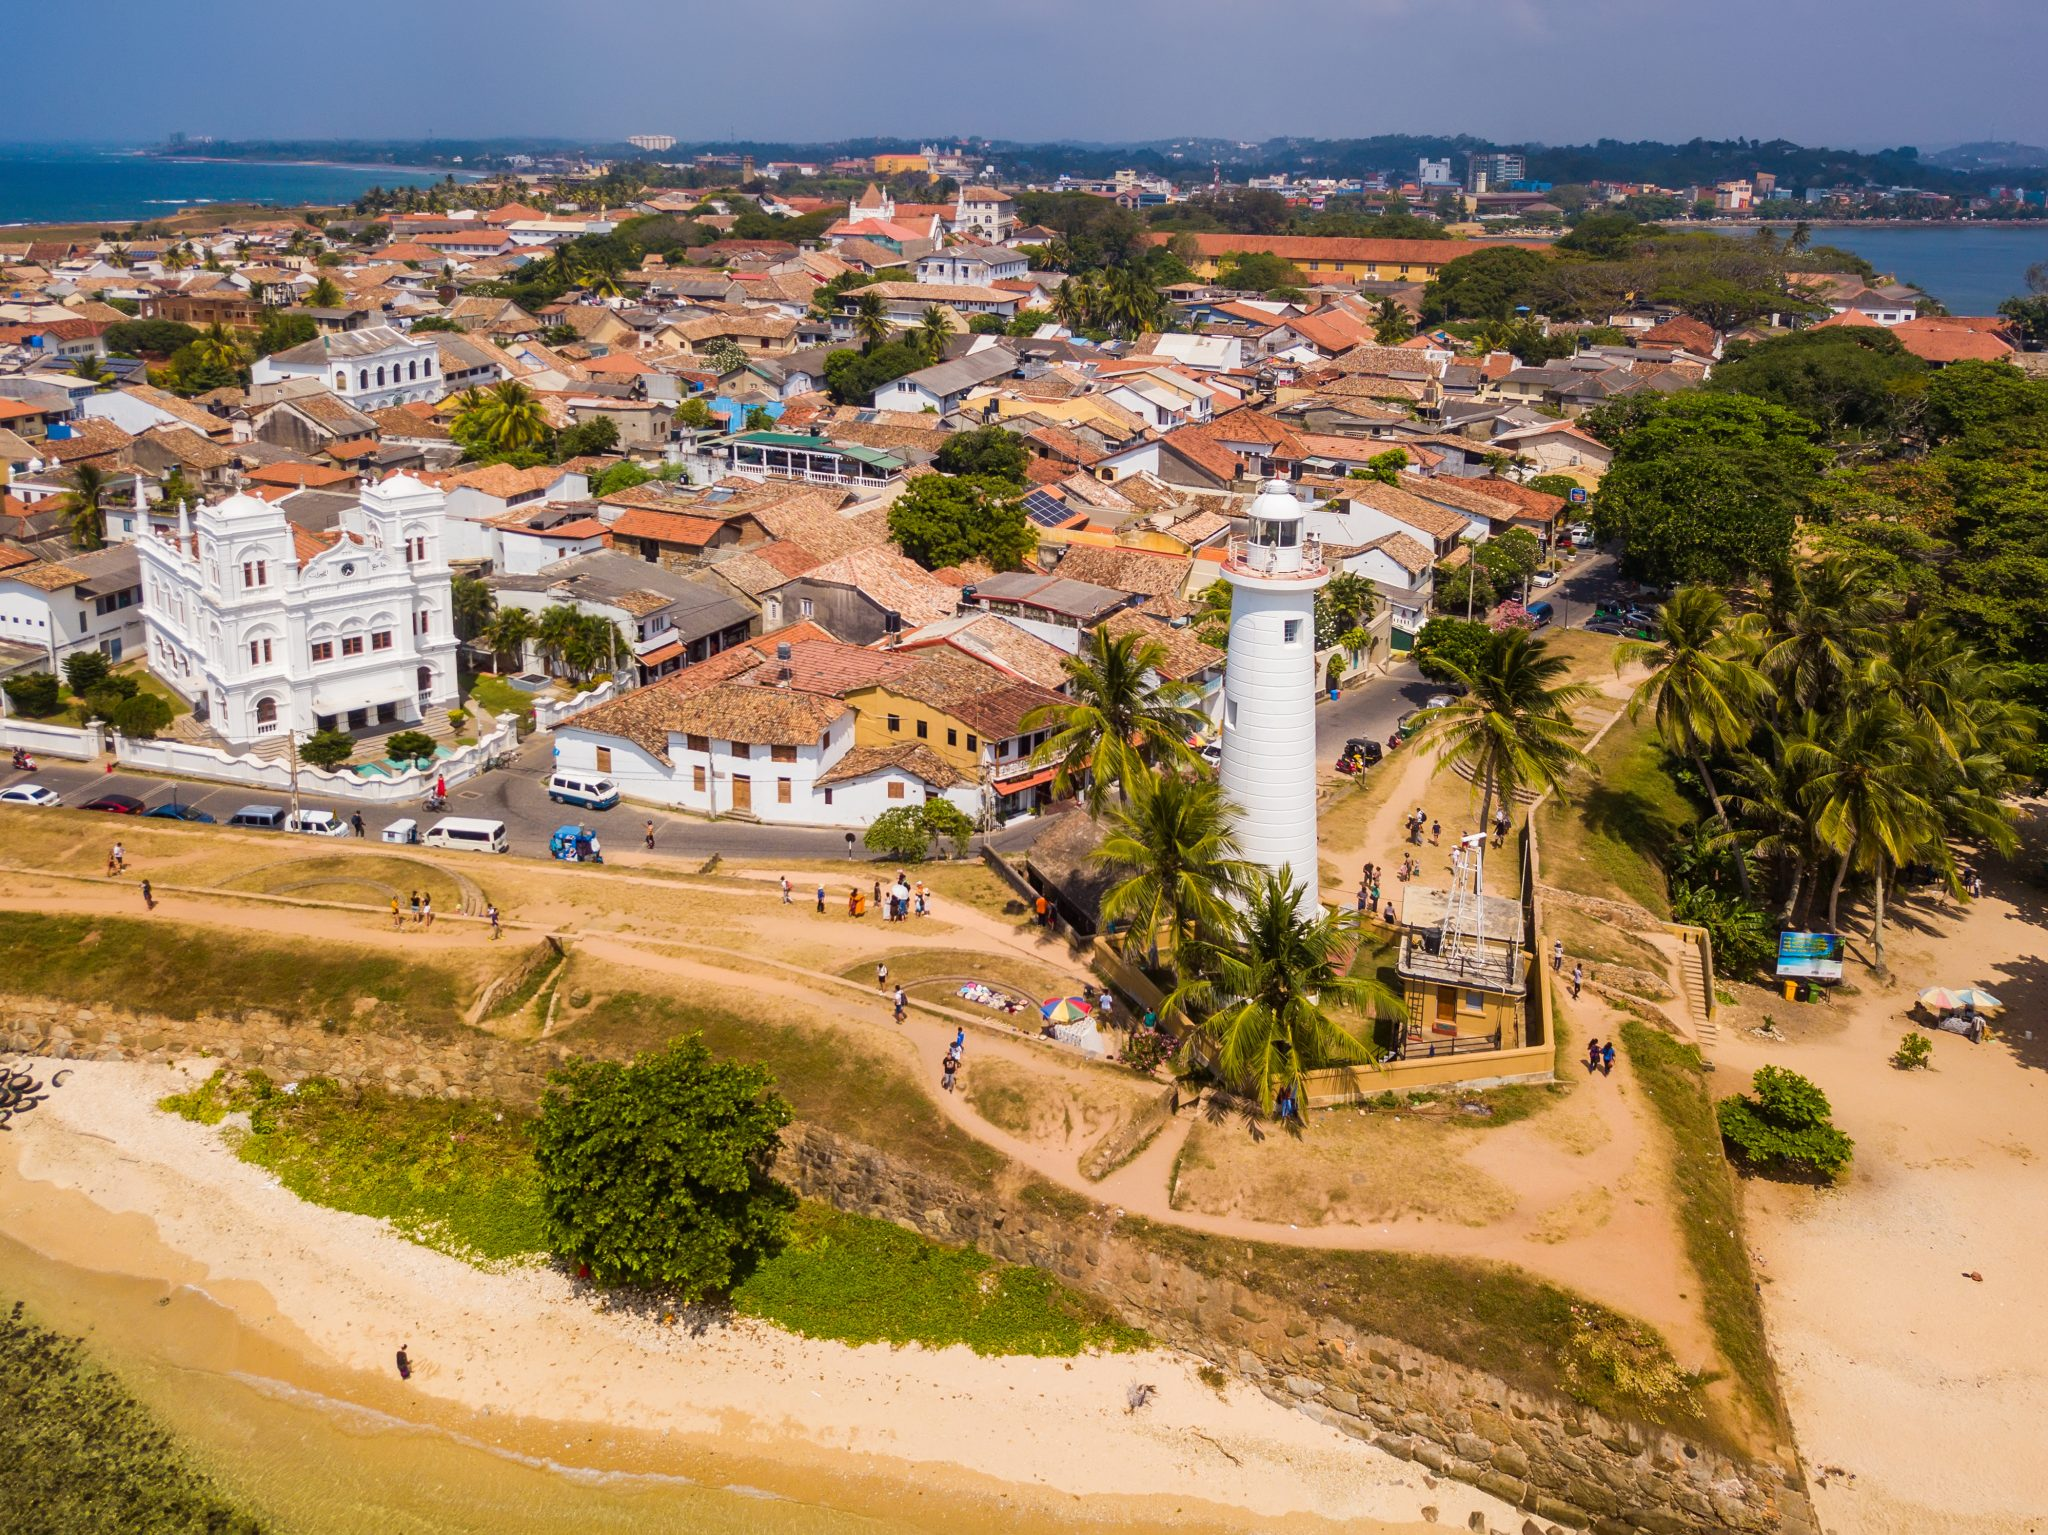 Screen-Galle-Destinations-Rising-galle-dutch-fort-galle-fort-sri-lanka-aerial-view